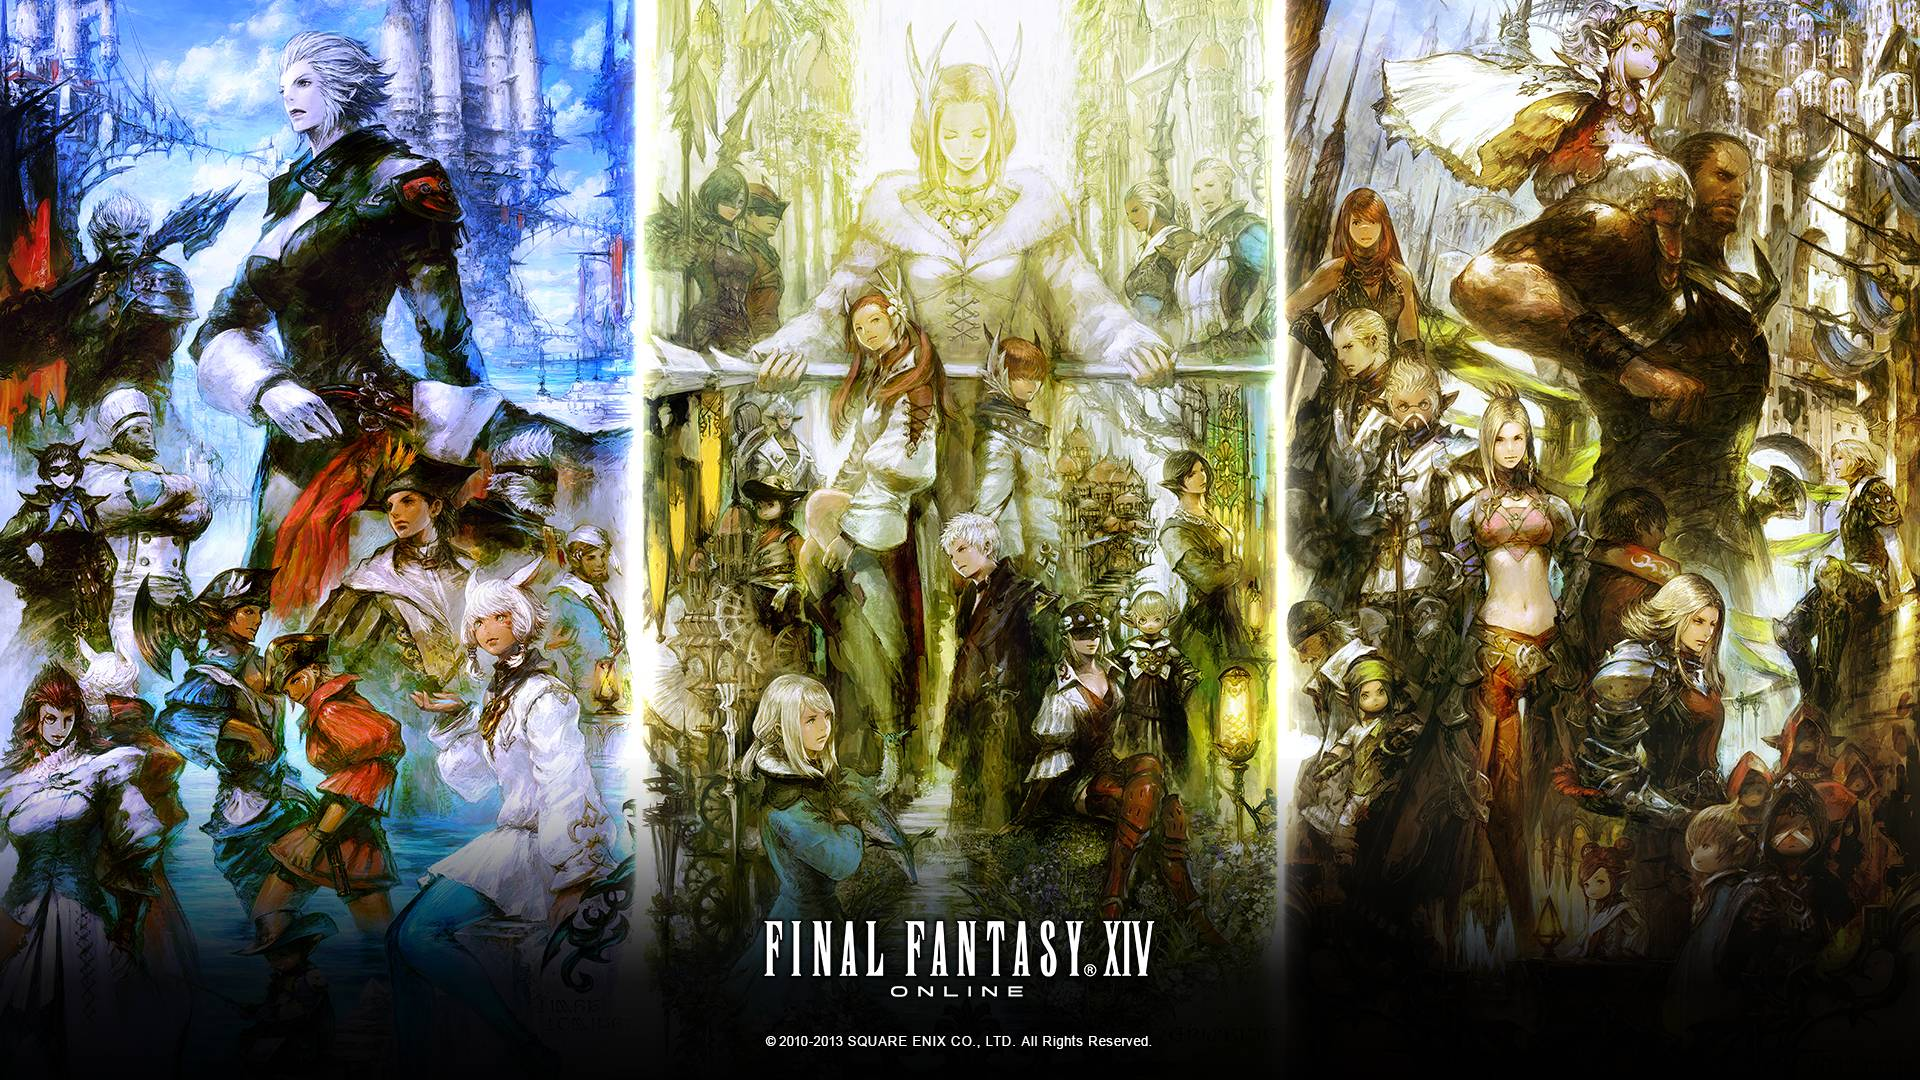 FINAL FANTASY XIV: A Realm Reborn Fan Kit